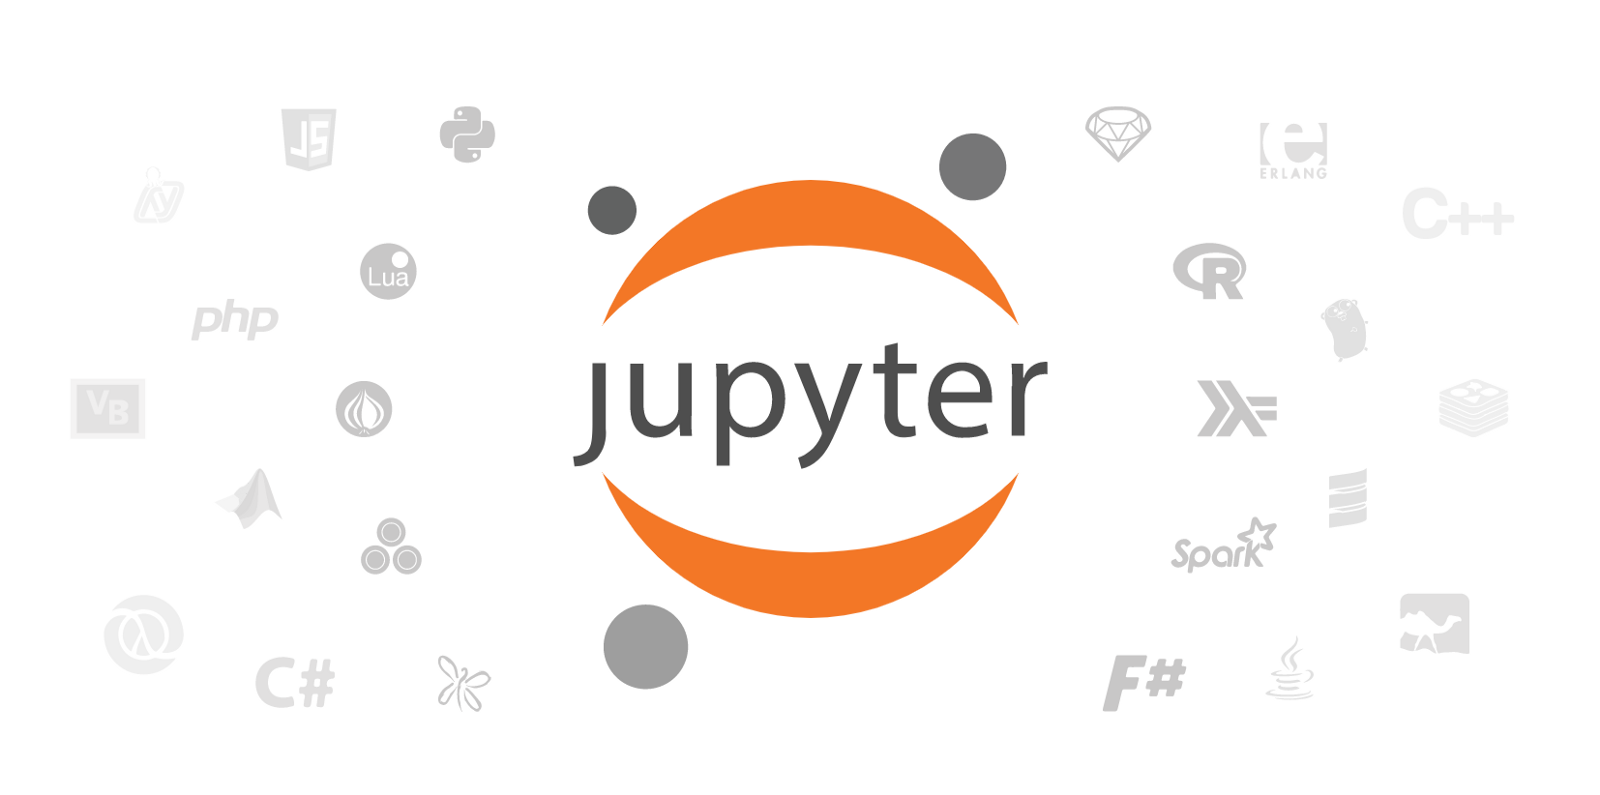 10 tips on using Jupyter Notebook